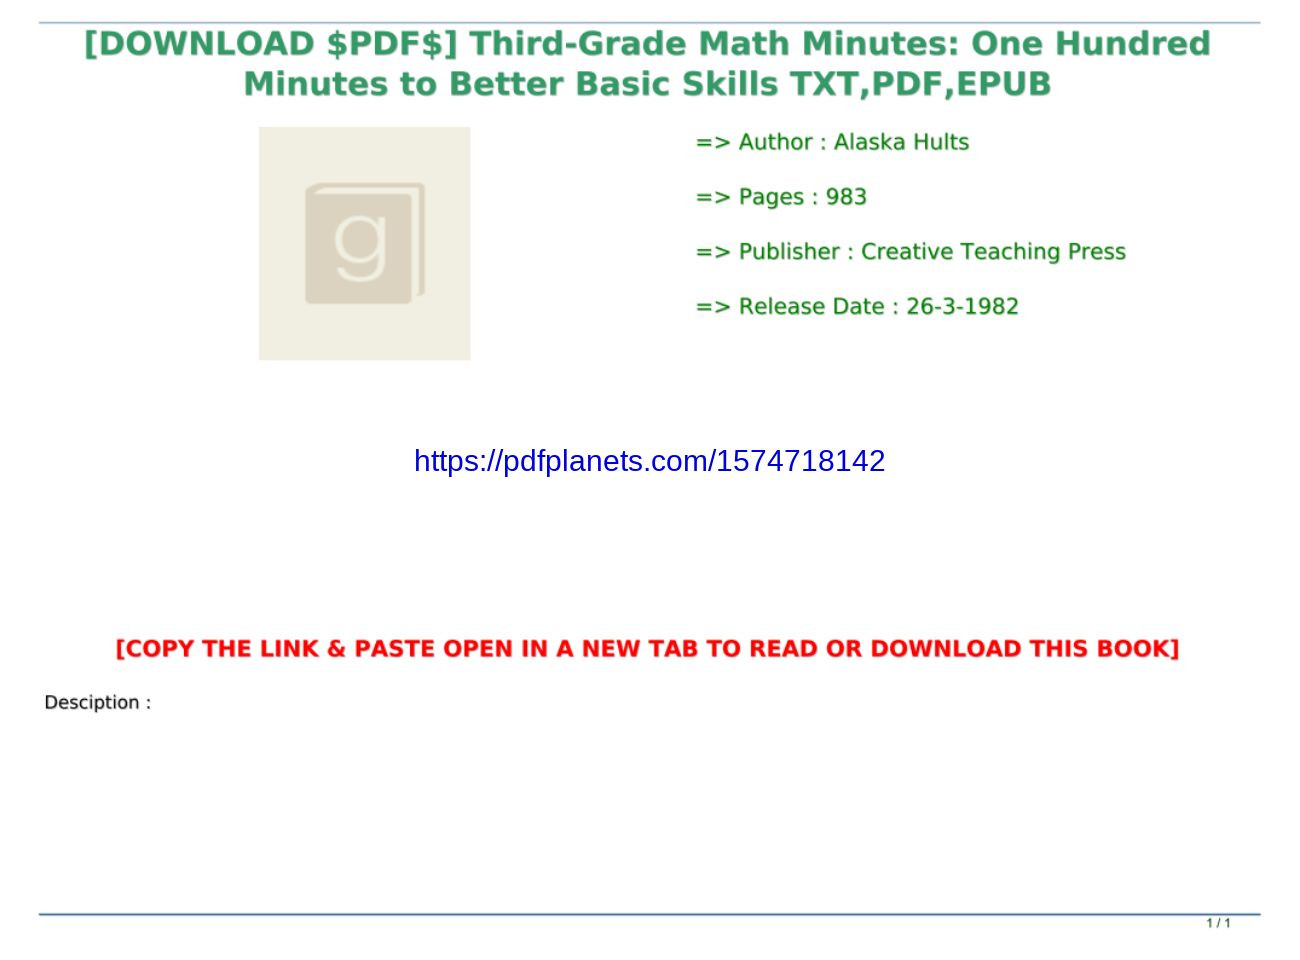 Third Grade Math Minutes Pdf Download $pdf$] Third Grade Math Minutes E Hundred